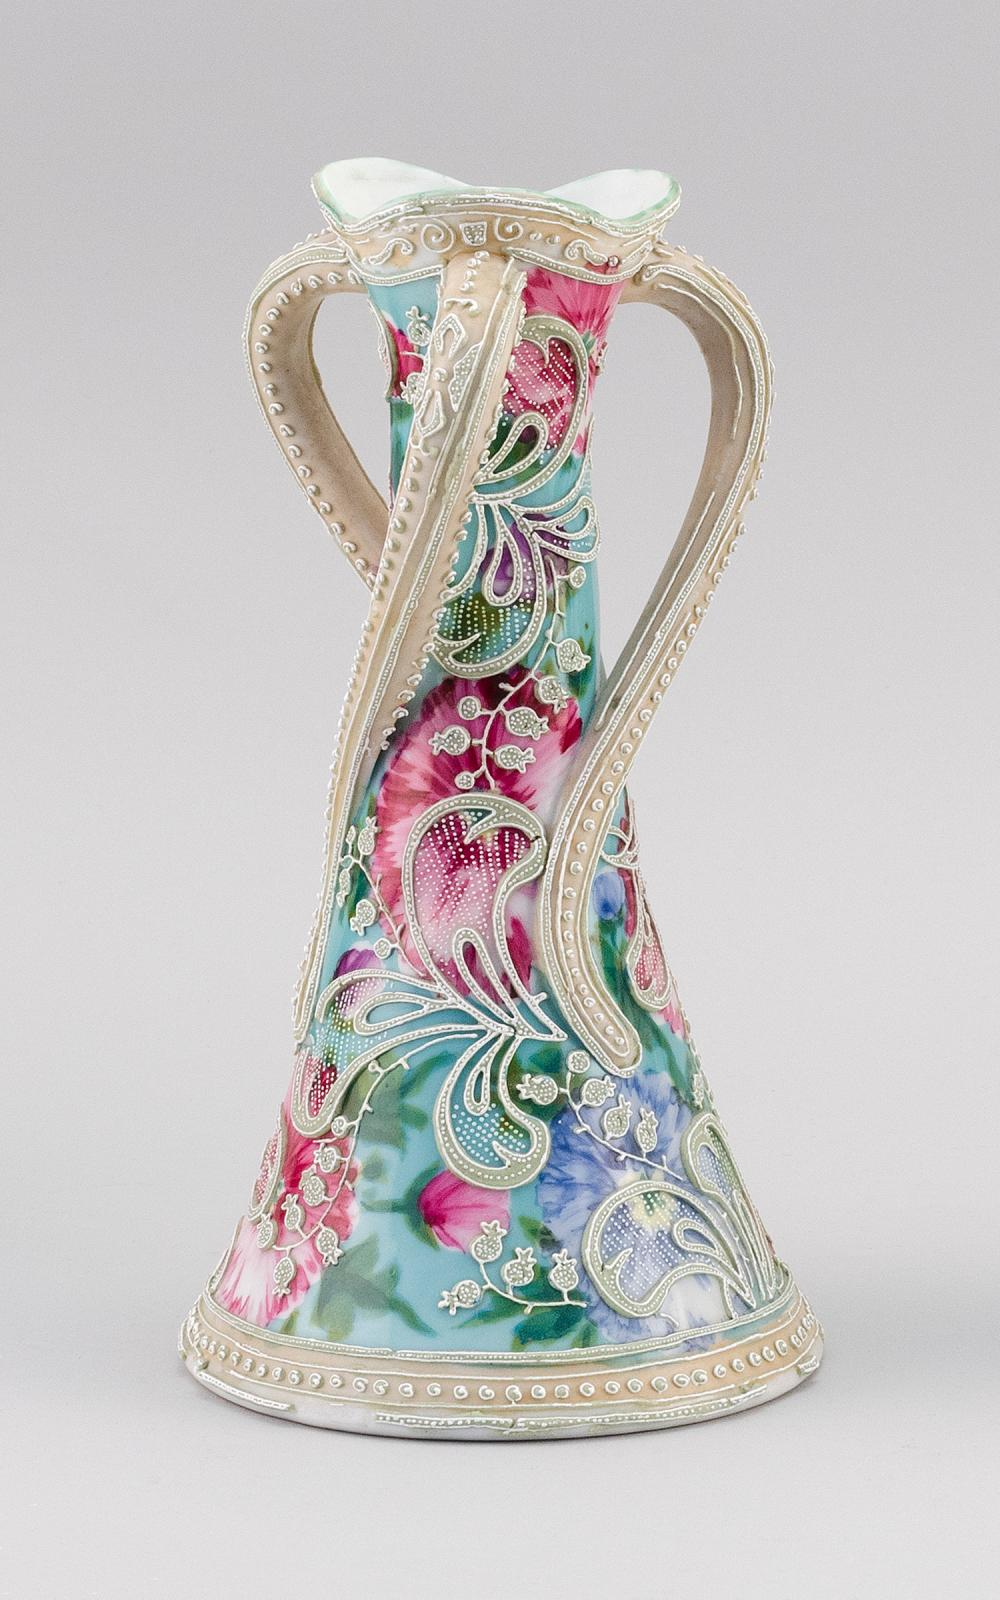 MORIAGE NIPPON PORCELAIN VASE Conical, with three twisting handles. Moriage bellflower design on a floral-patterned ground. Height 10